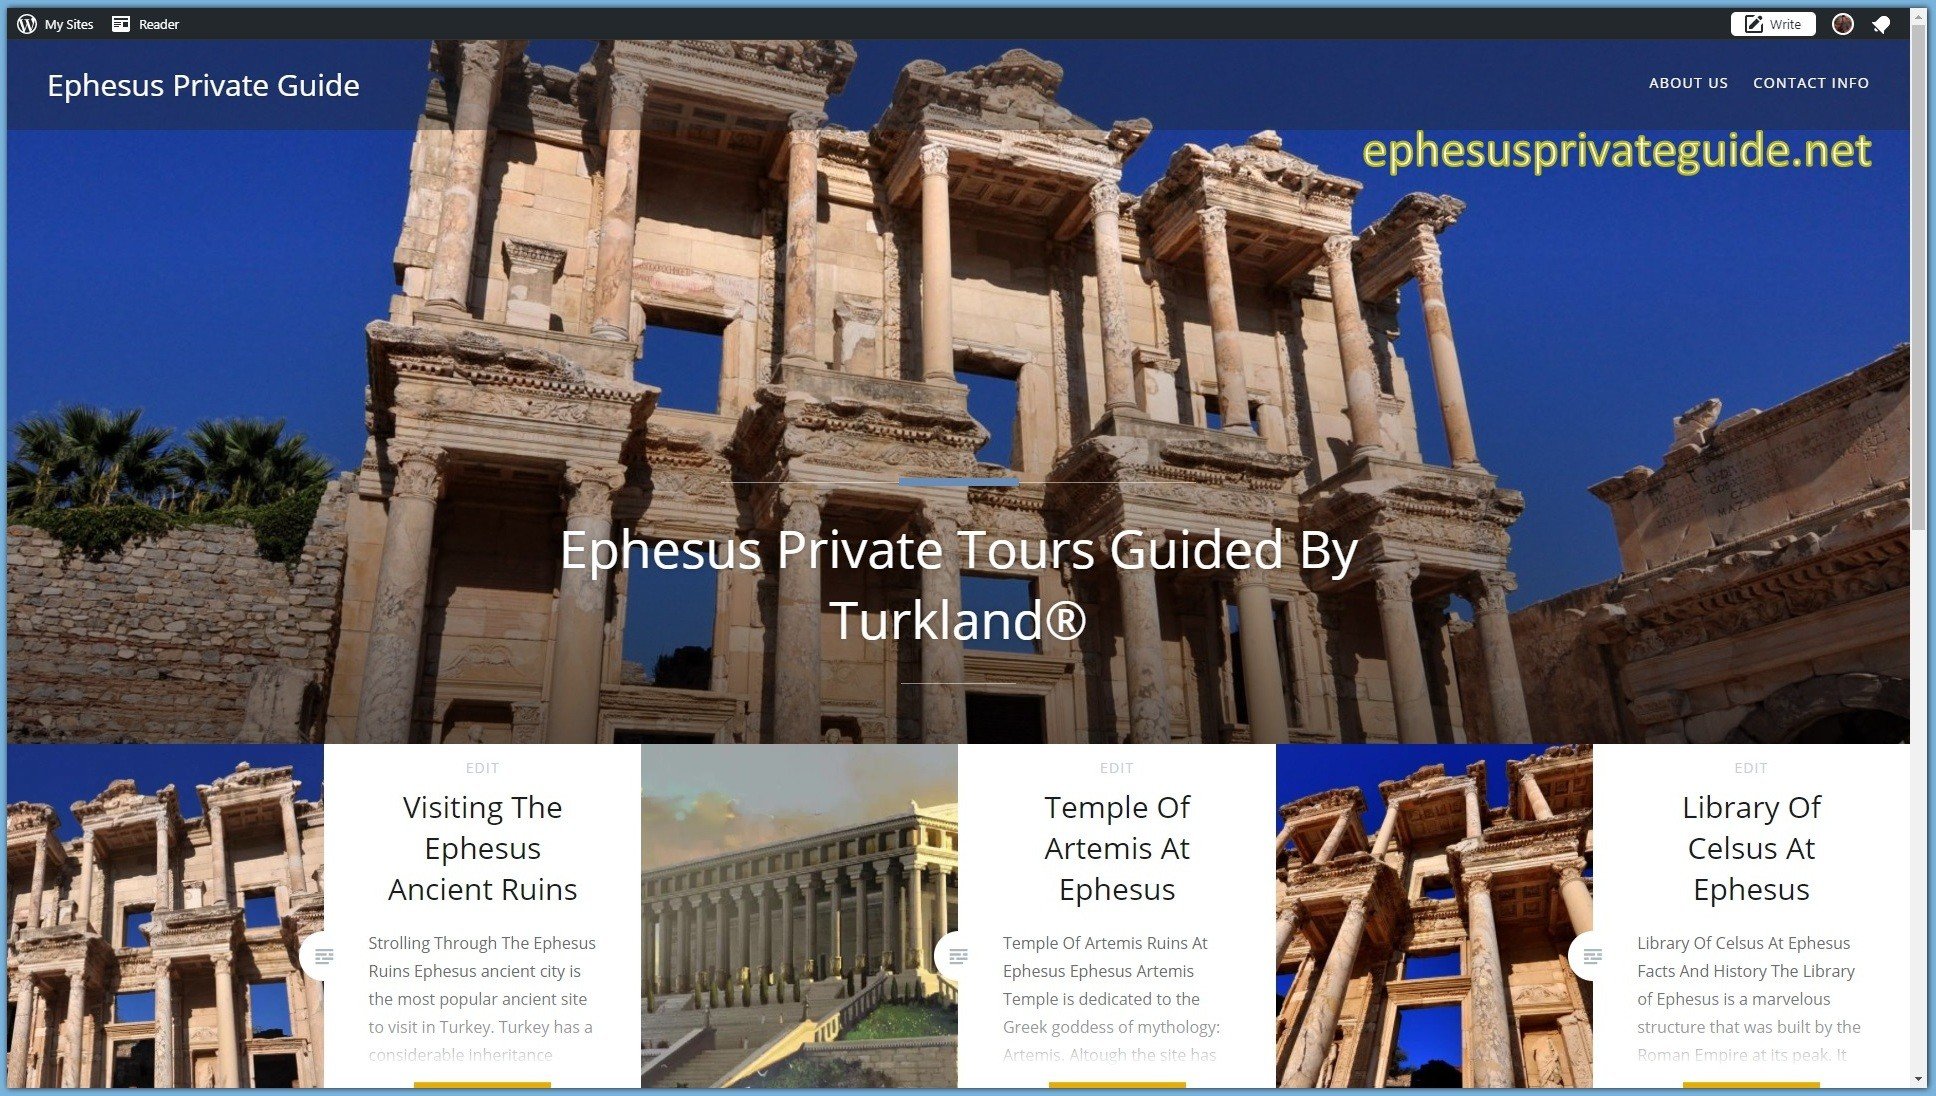 Recommended Travel Agency For Ephesus Tours By Turkland